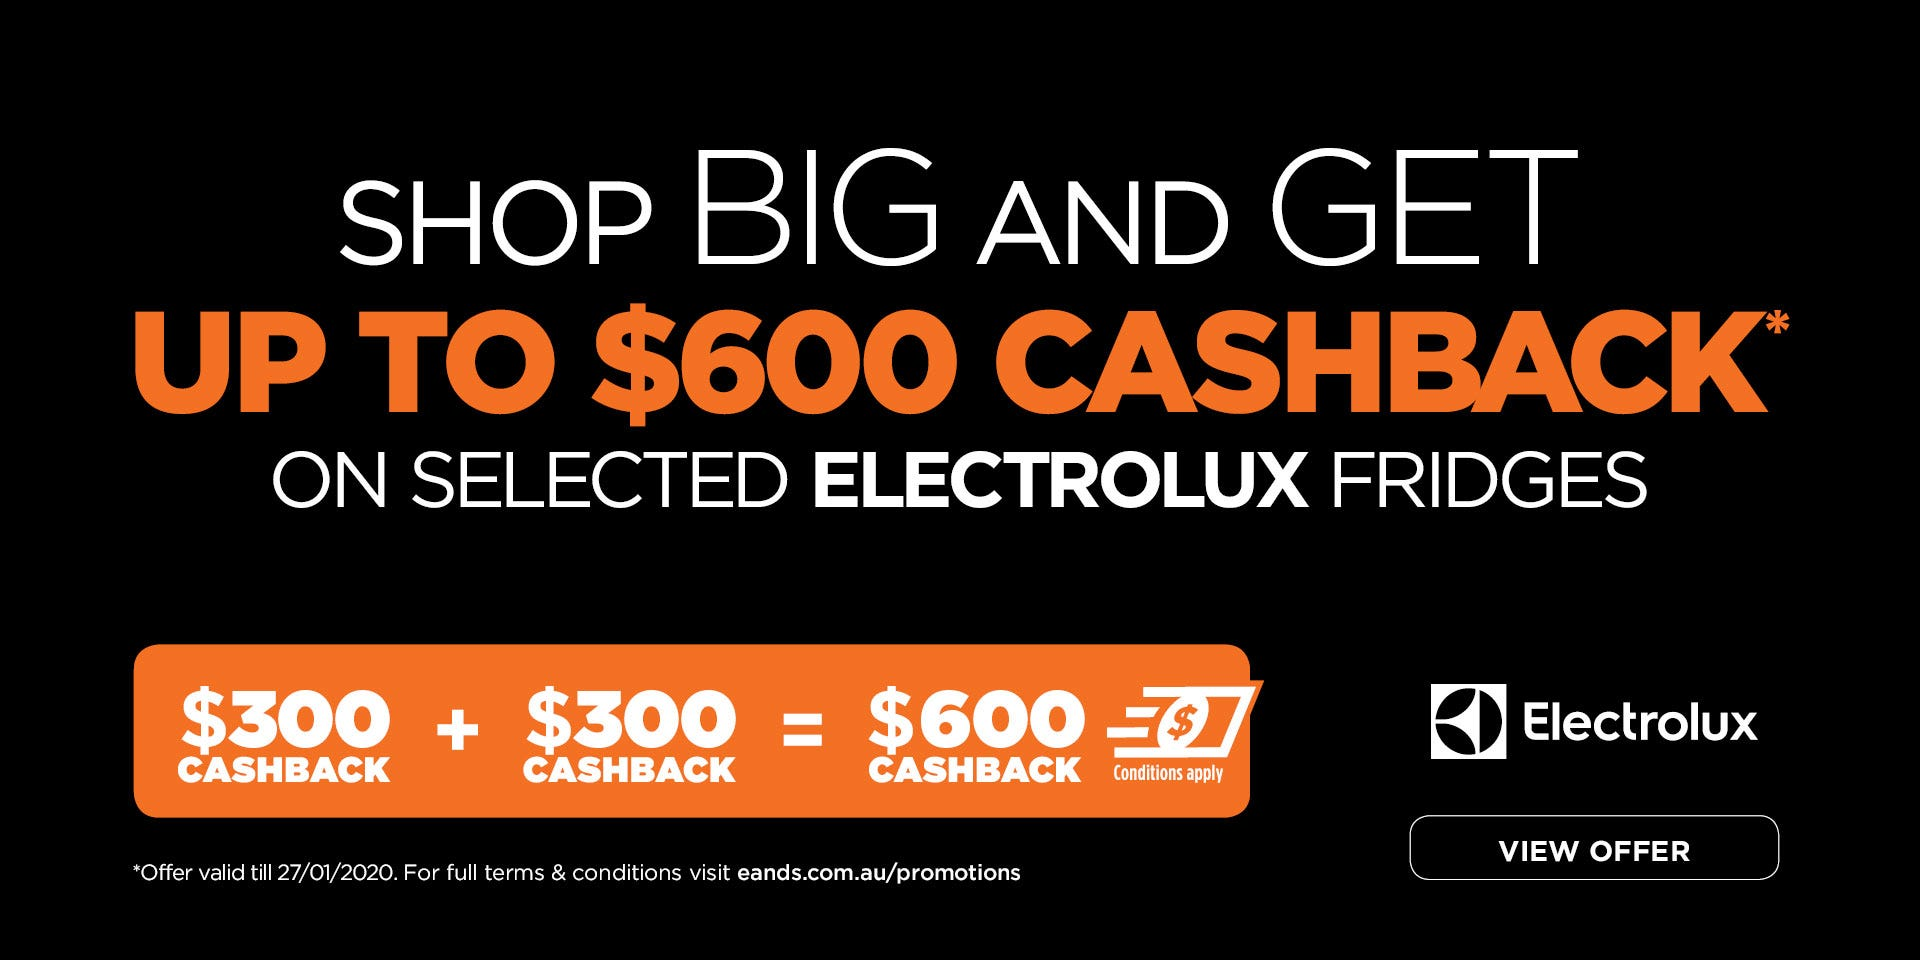 Up to $600 cashback on selected Electrolux refrigeration. Valid 27/01/2020. Terms and conditions apply